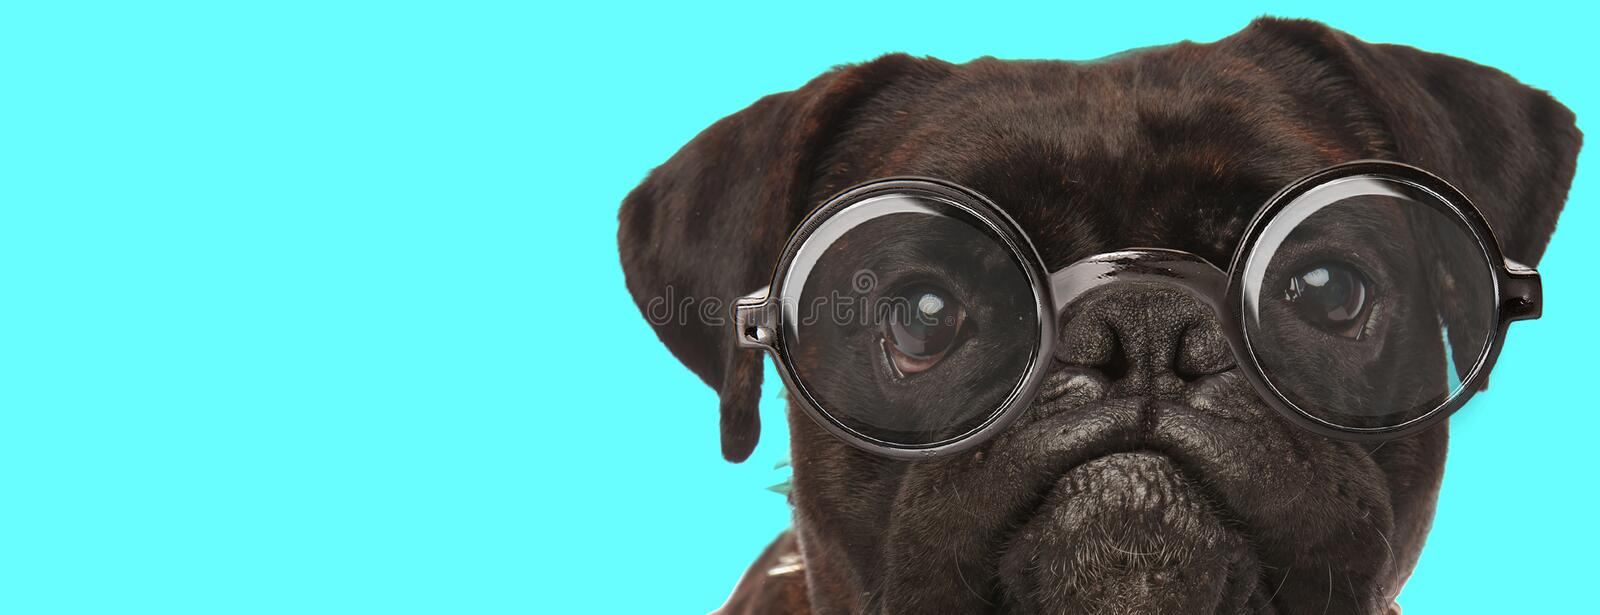 Cute Boxer dog wearing eyeglasses and showing a grumpy face royalty free stock images